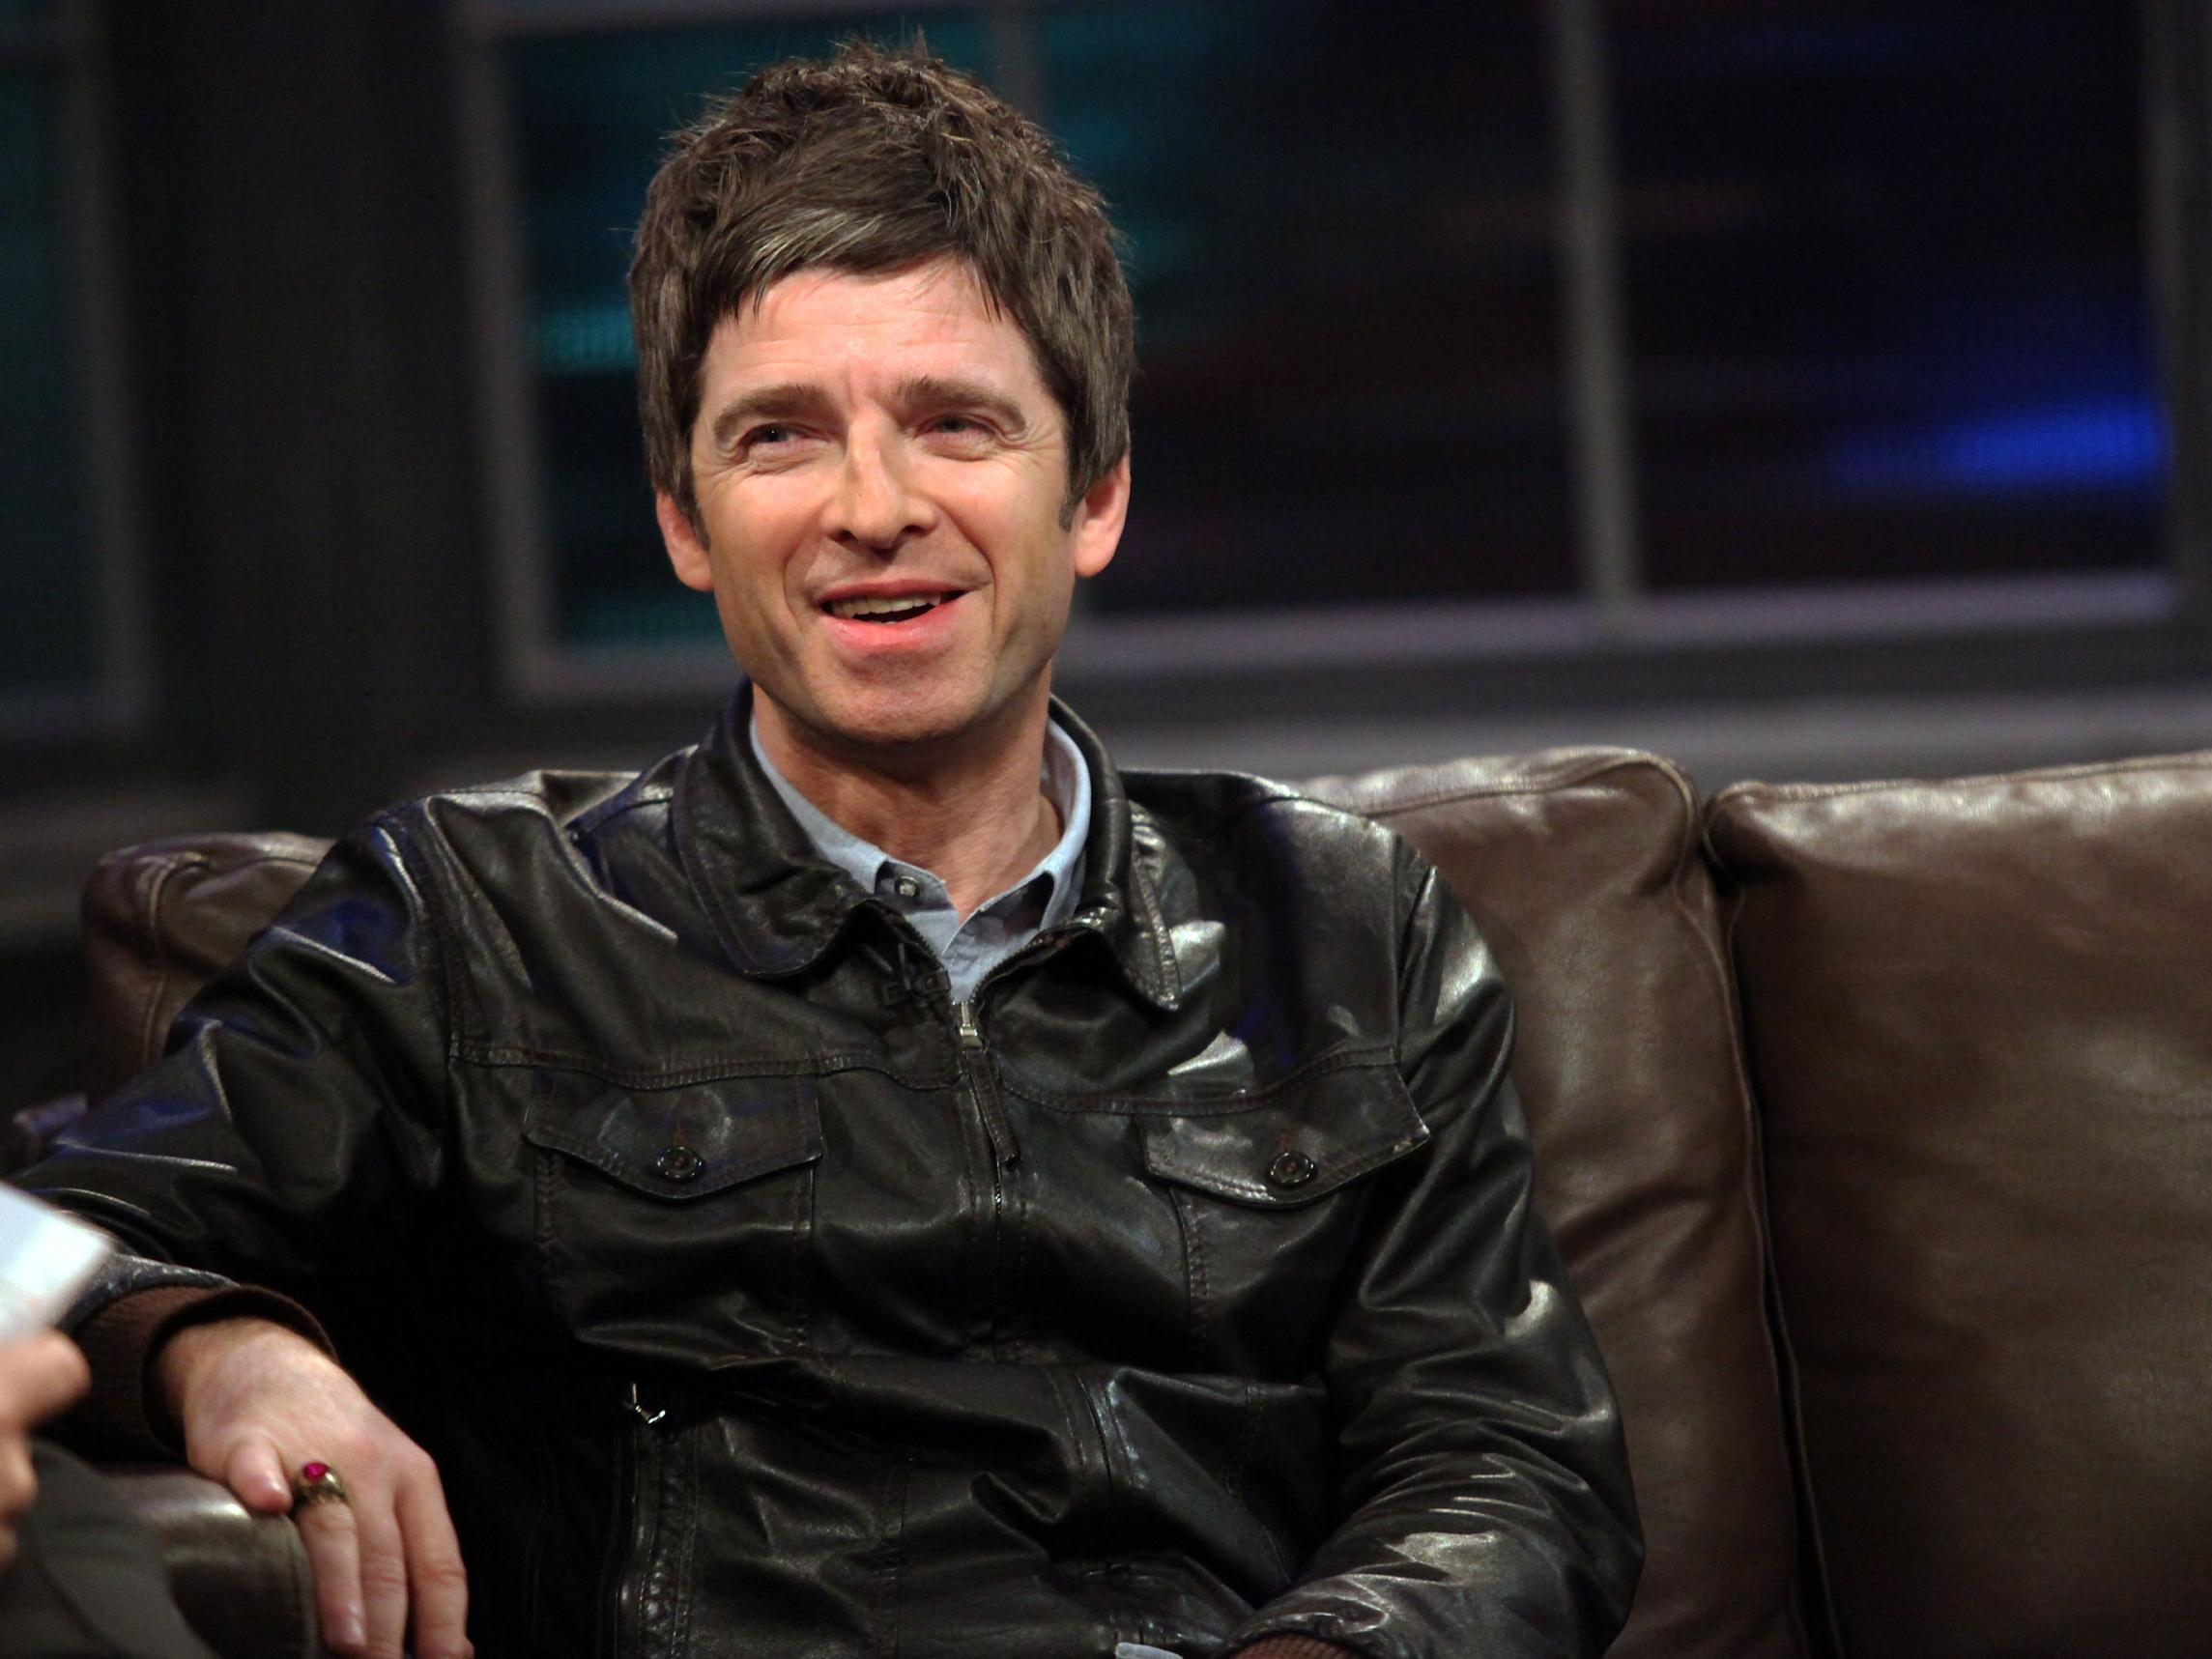 Noel Gallagher thought he would die after 'brutal panic attack' caused by cocaine